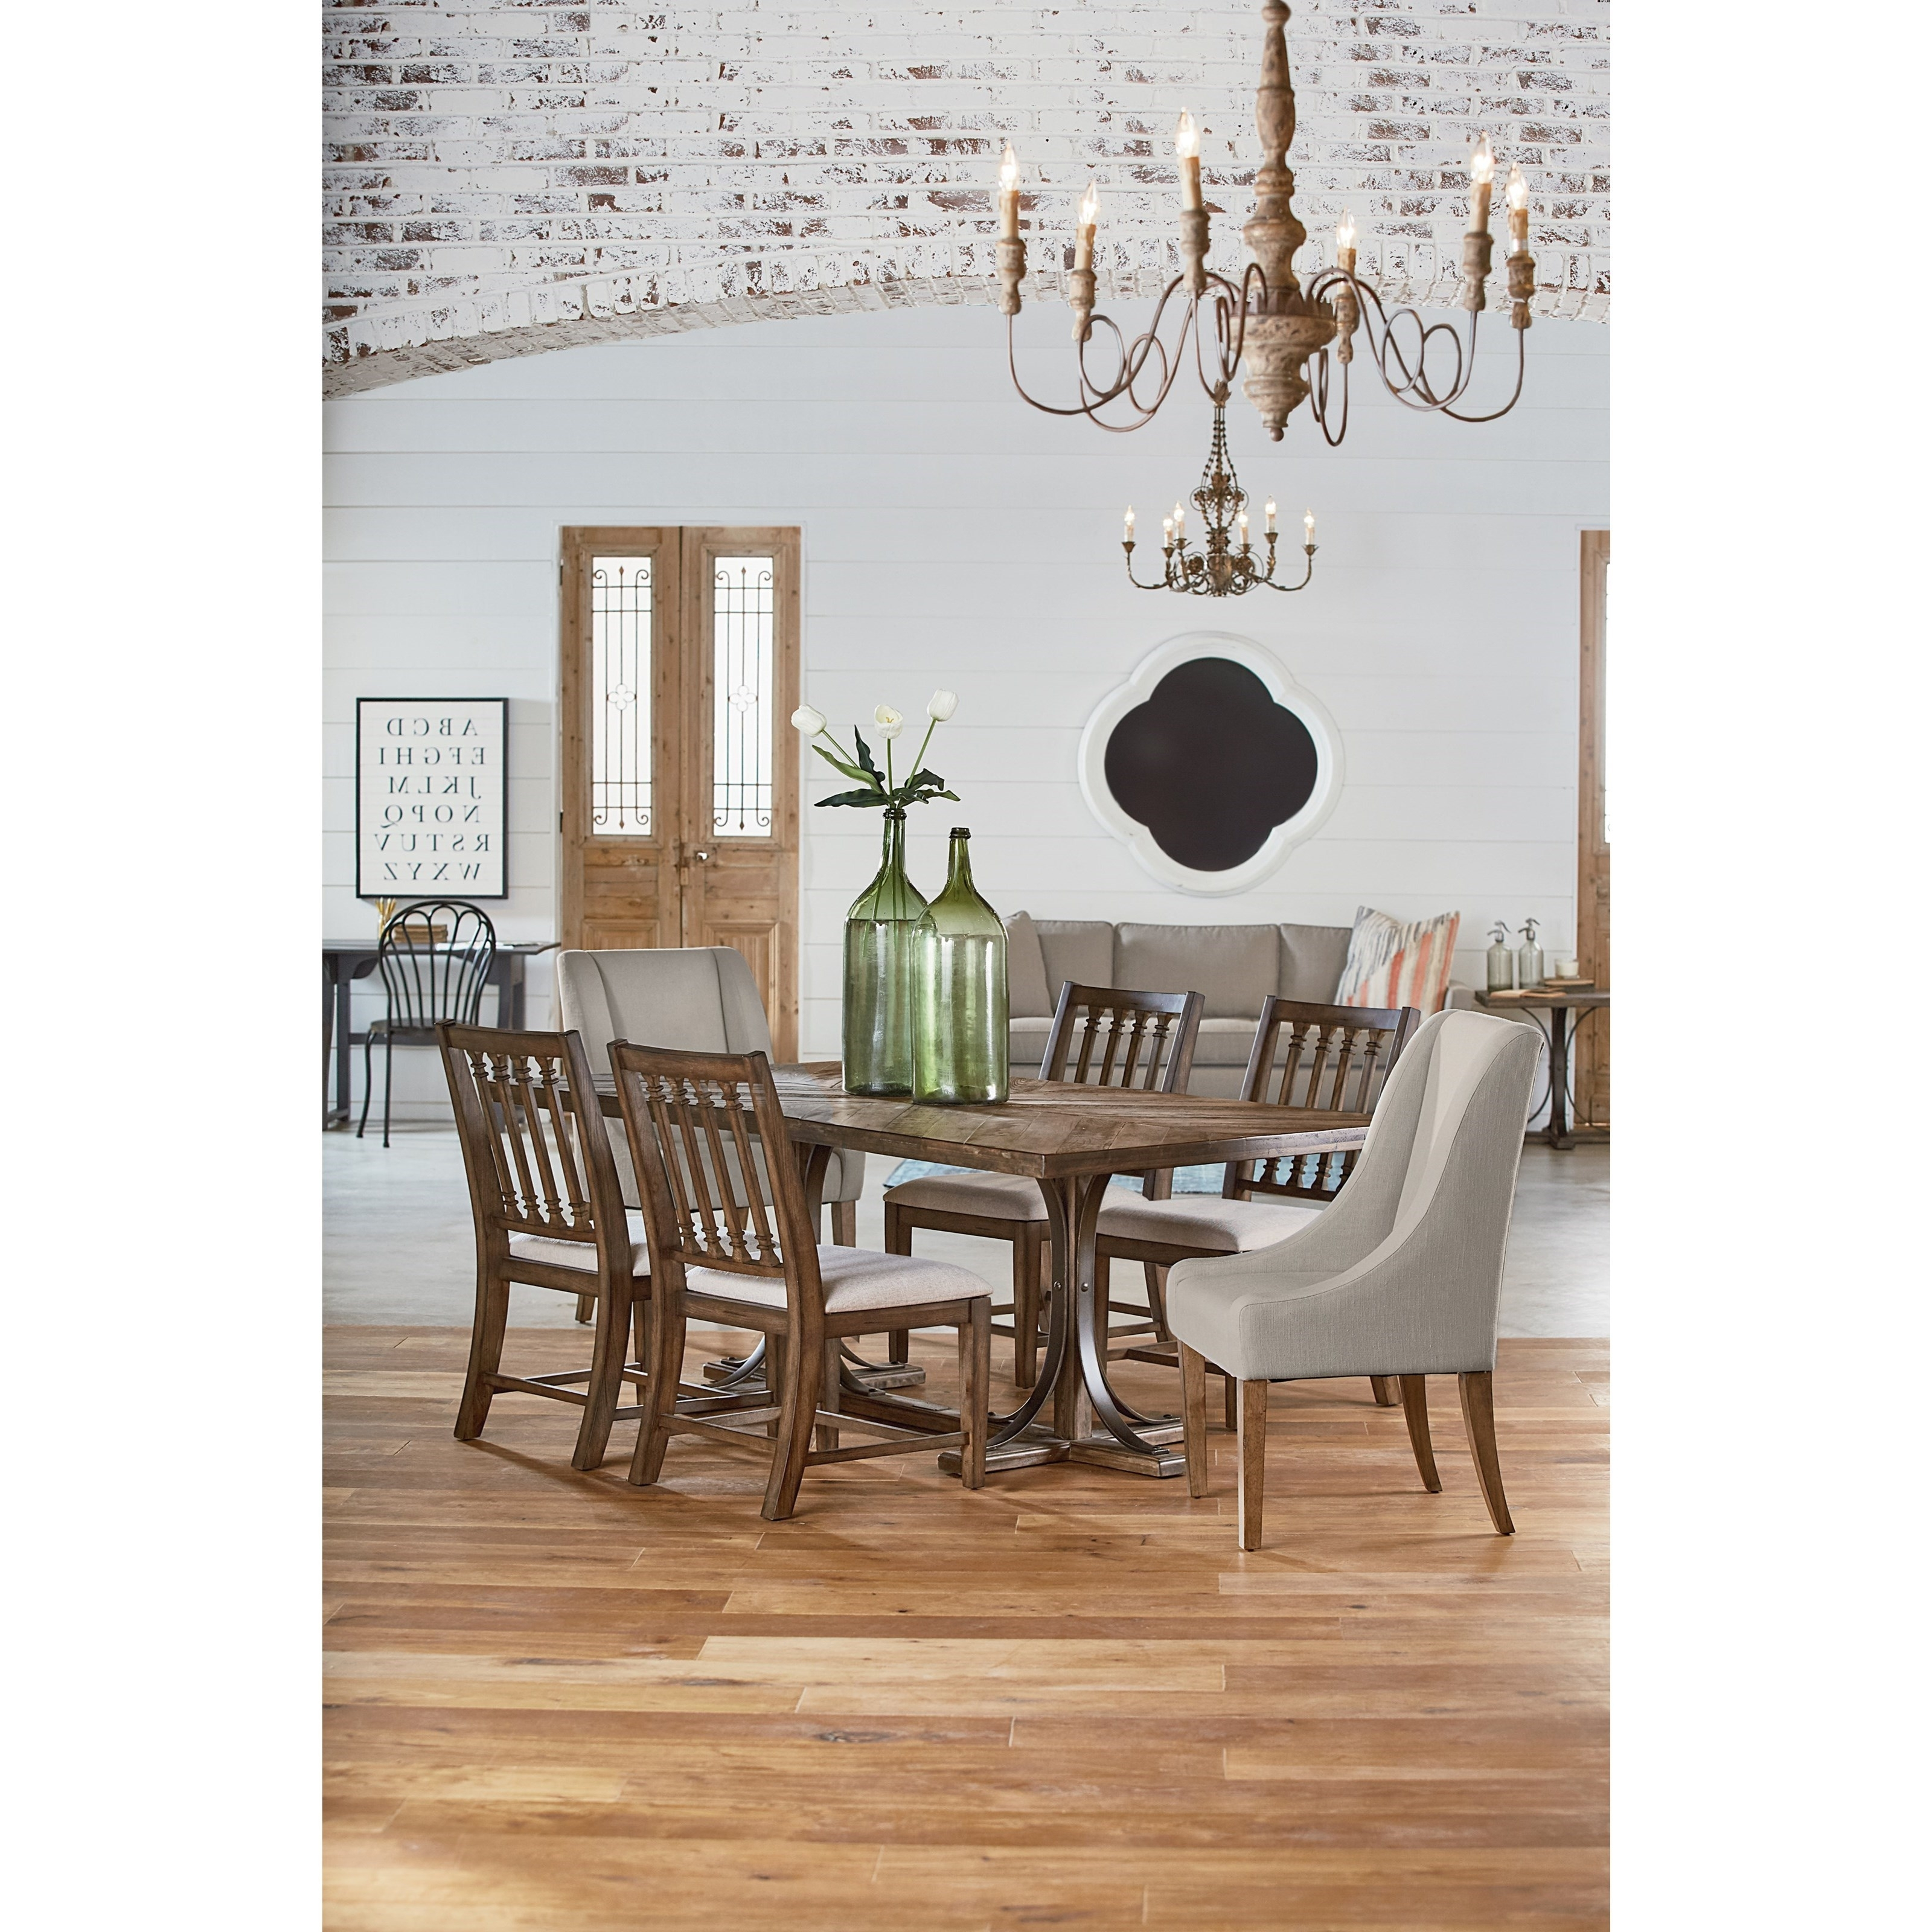 Magnolia Home Shop Floor Dining Tables With Iron Trestle Intended For Most Recent 6 Pc (View 10 of 25)